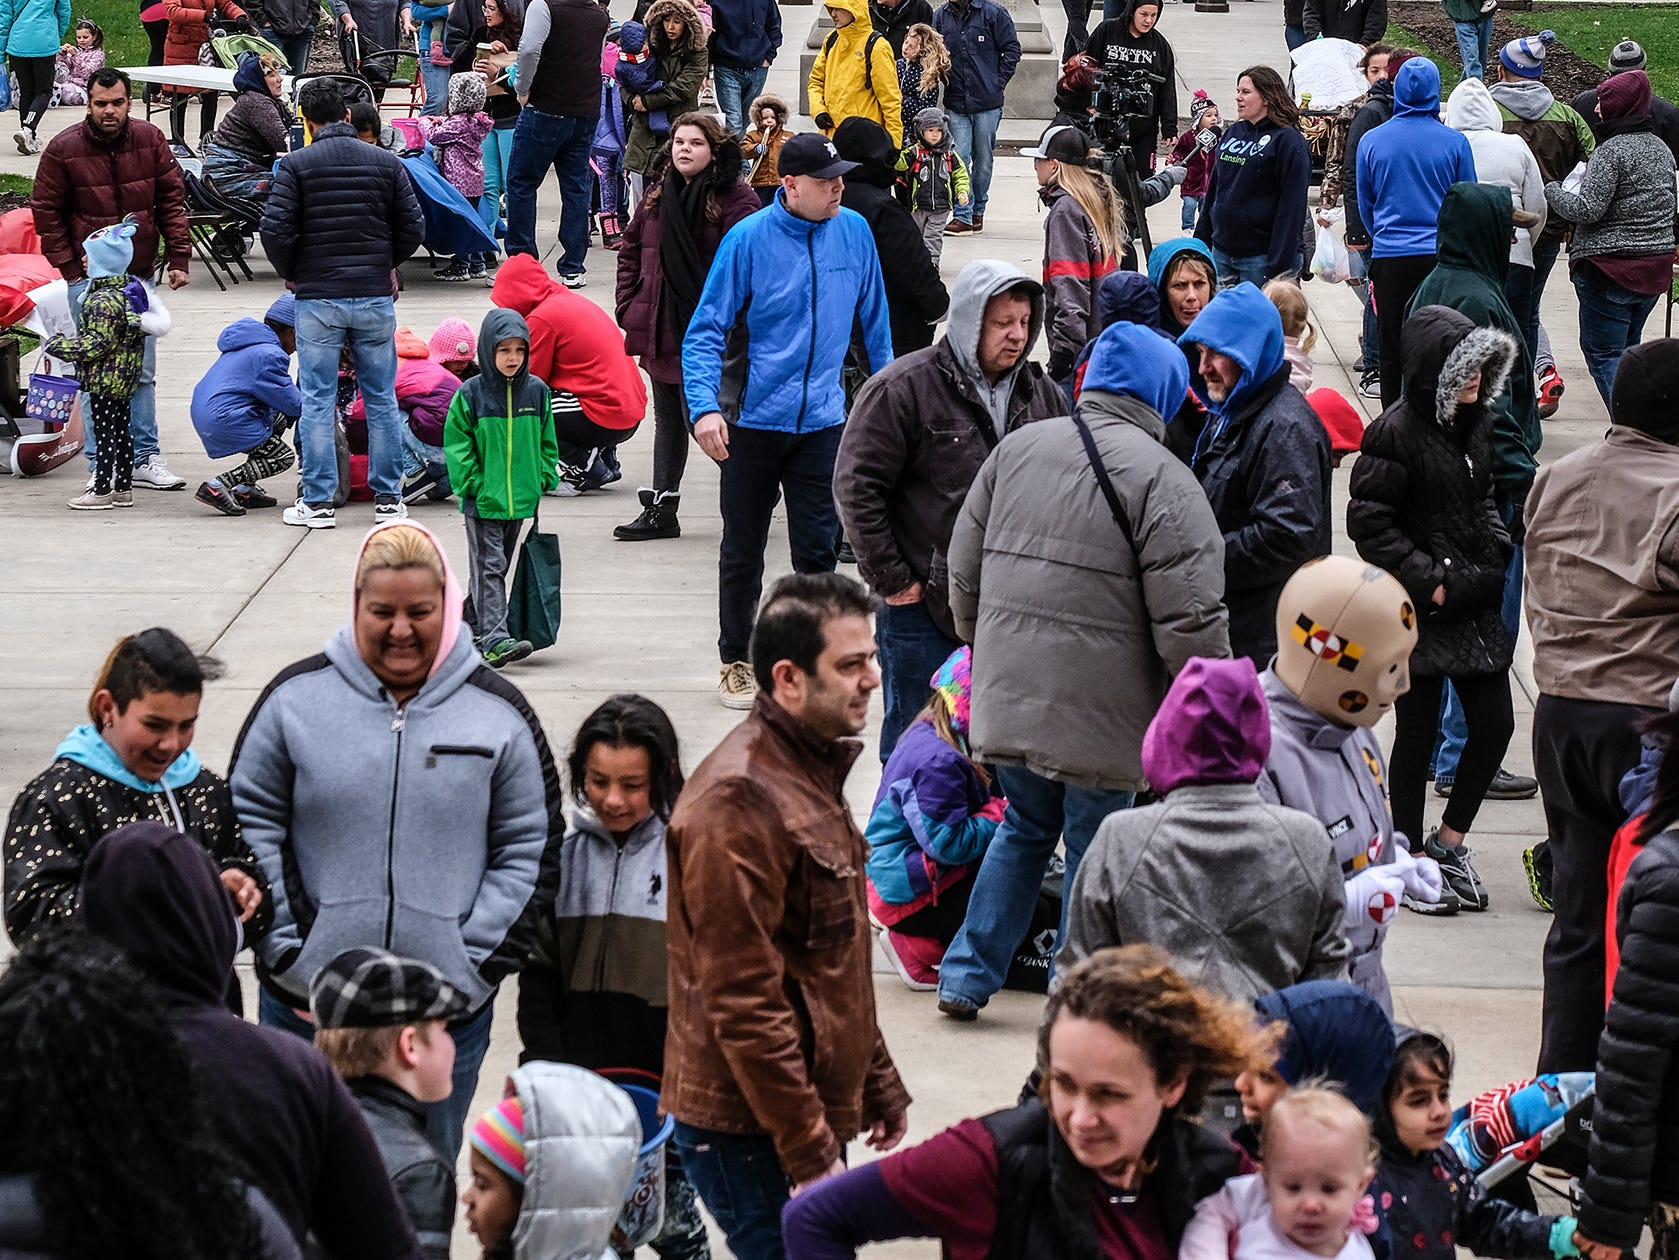 Families gather at the state Capitol for the annual Lansing Jaycees Easter Egg Hunt to begin another round Saturday, April 20, 2019.